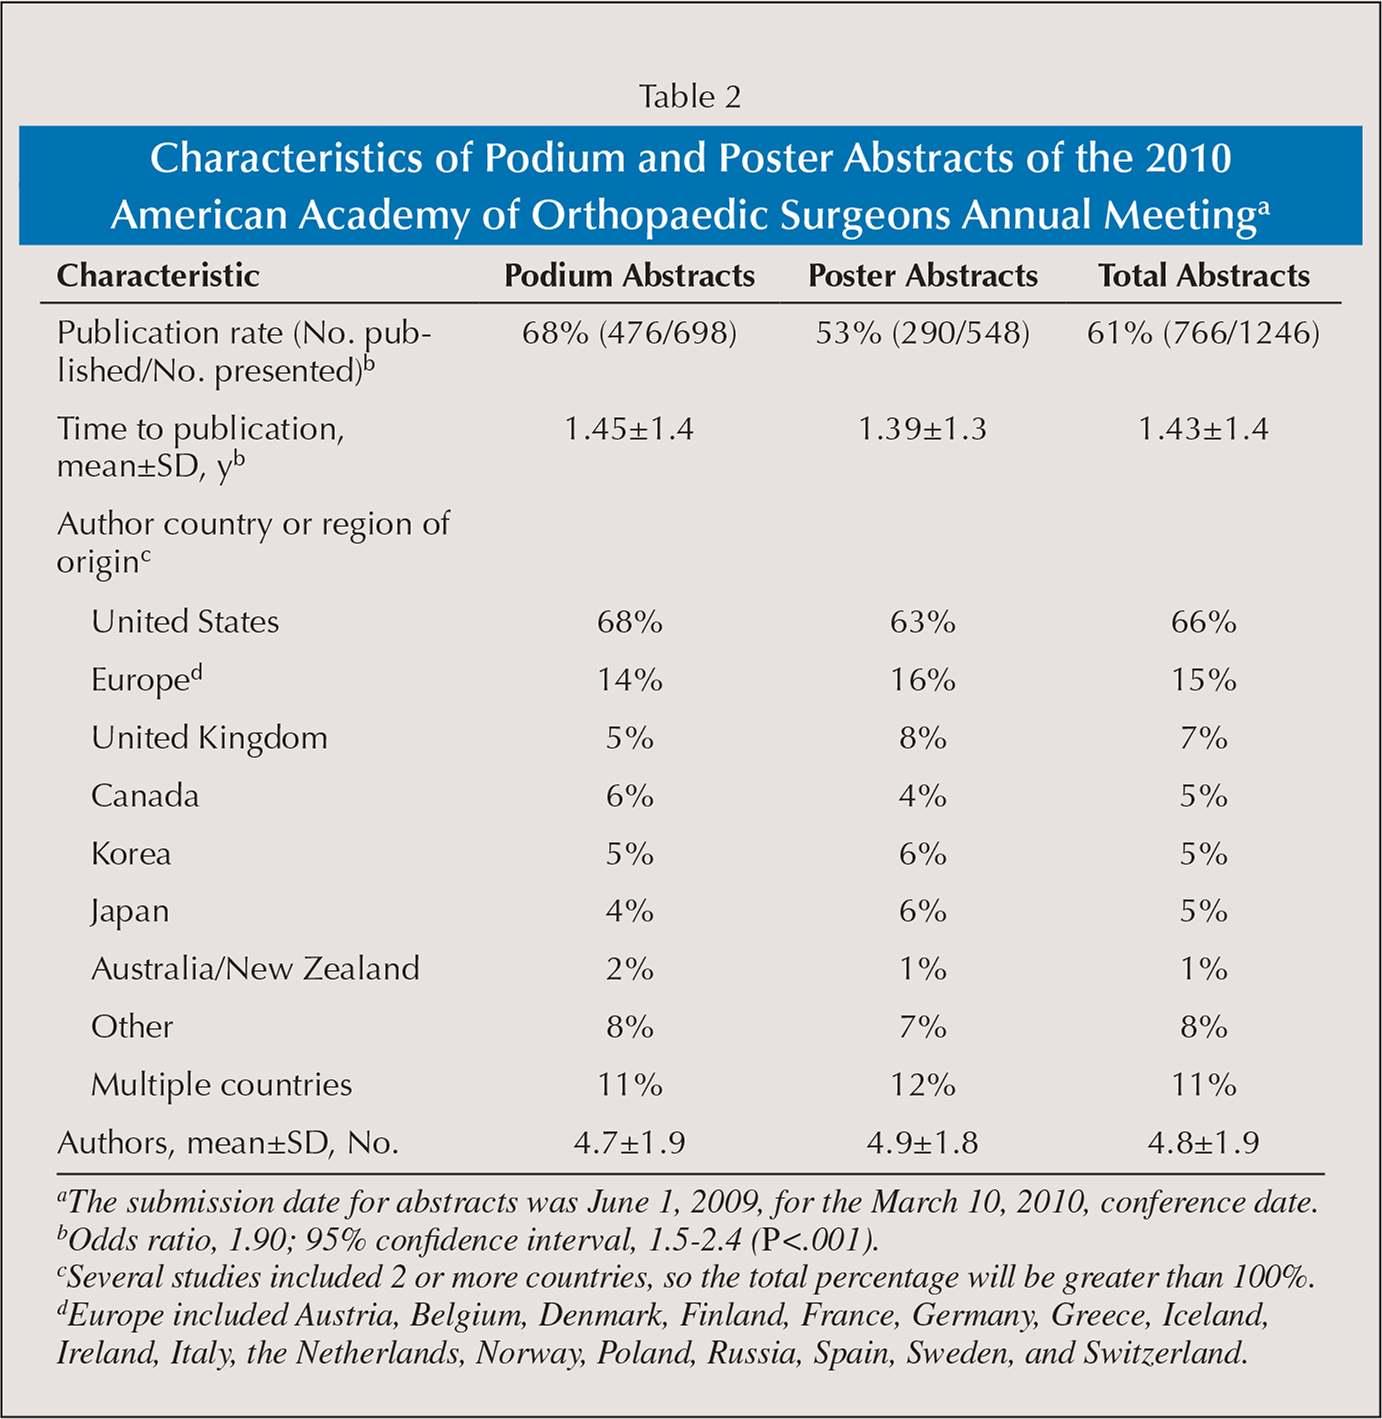 Characteristics of Podium and Poster Abstracts of the 2010 American Academy of Orthopaedic Surgeons Annual Meetinga